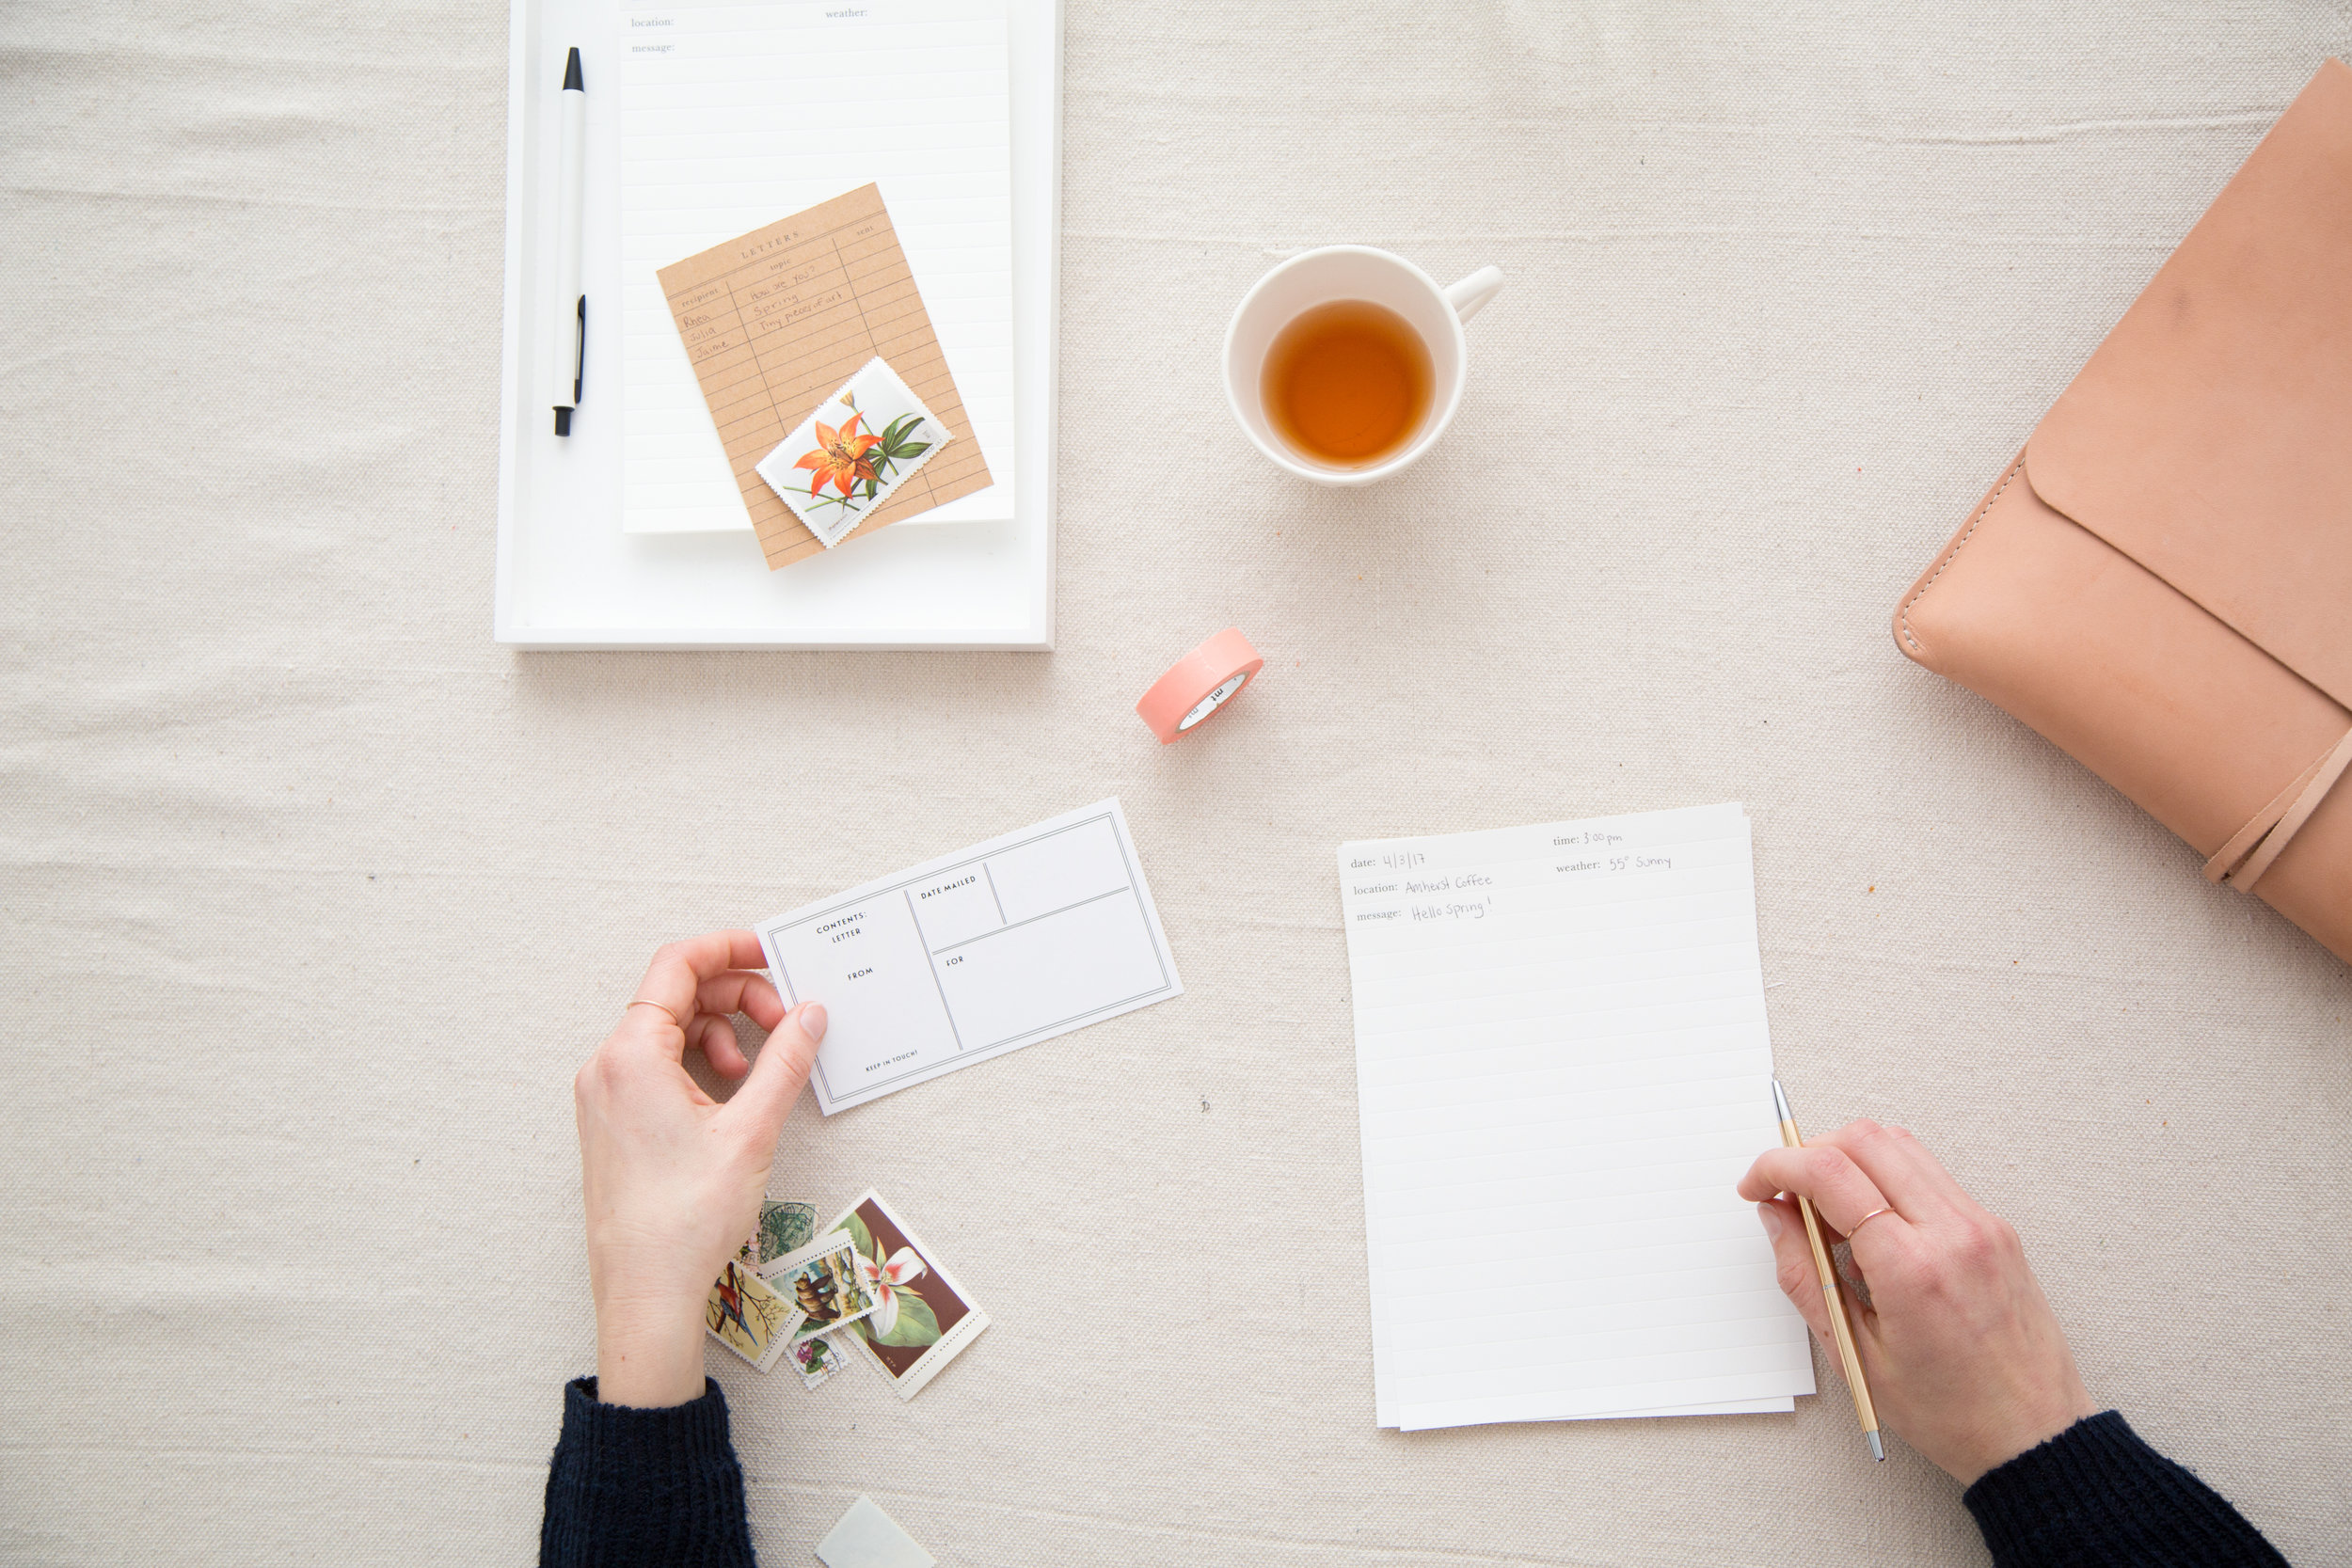 The working world is fast paced in a very different way than the fast pace of school. It's important to find time to slow down. Letter writing is an excellent way to pause, reflect, and re-connect. This  Letter Writing Essentials  kit will help your grad re-charge meaningfully.